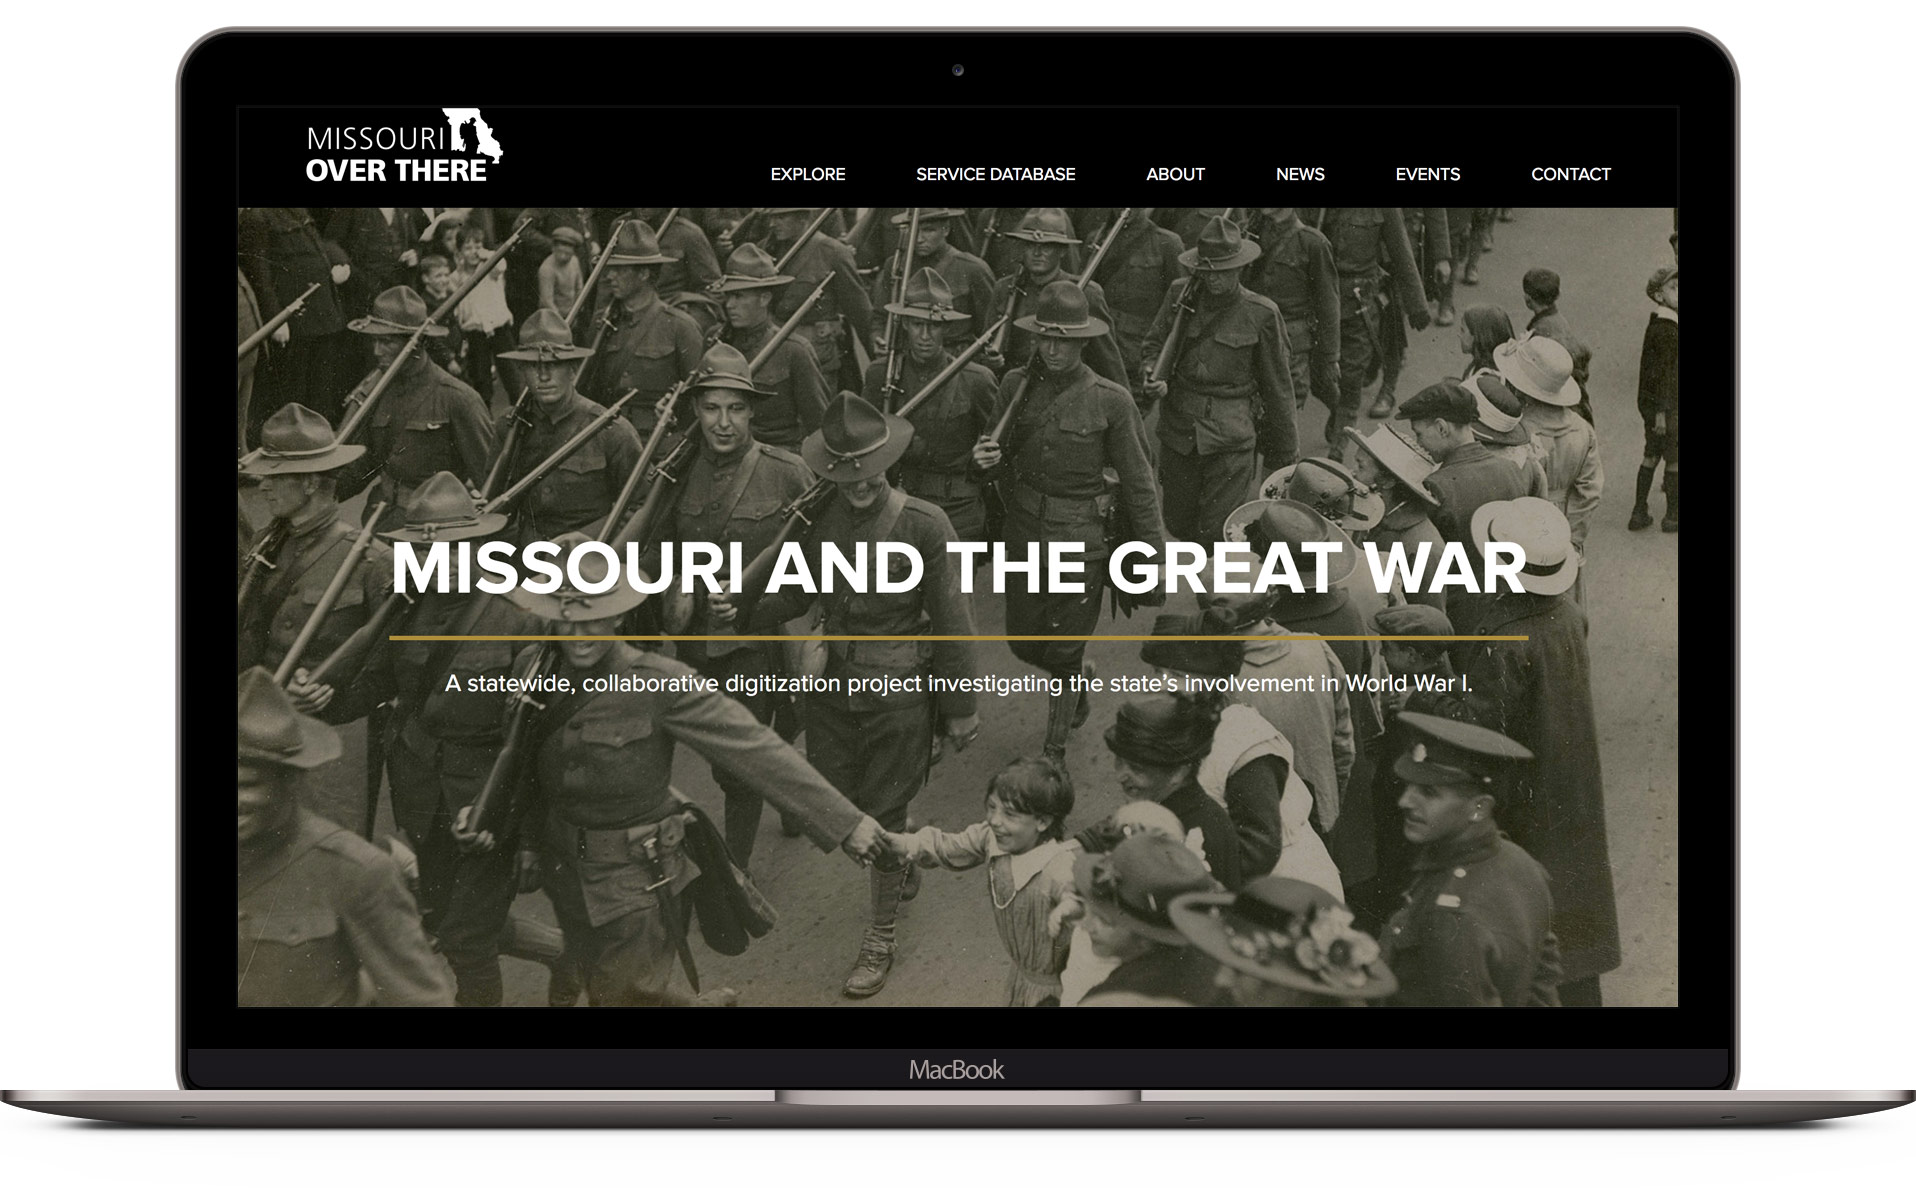 Home page design for Missouri Over There website